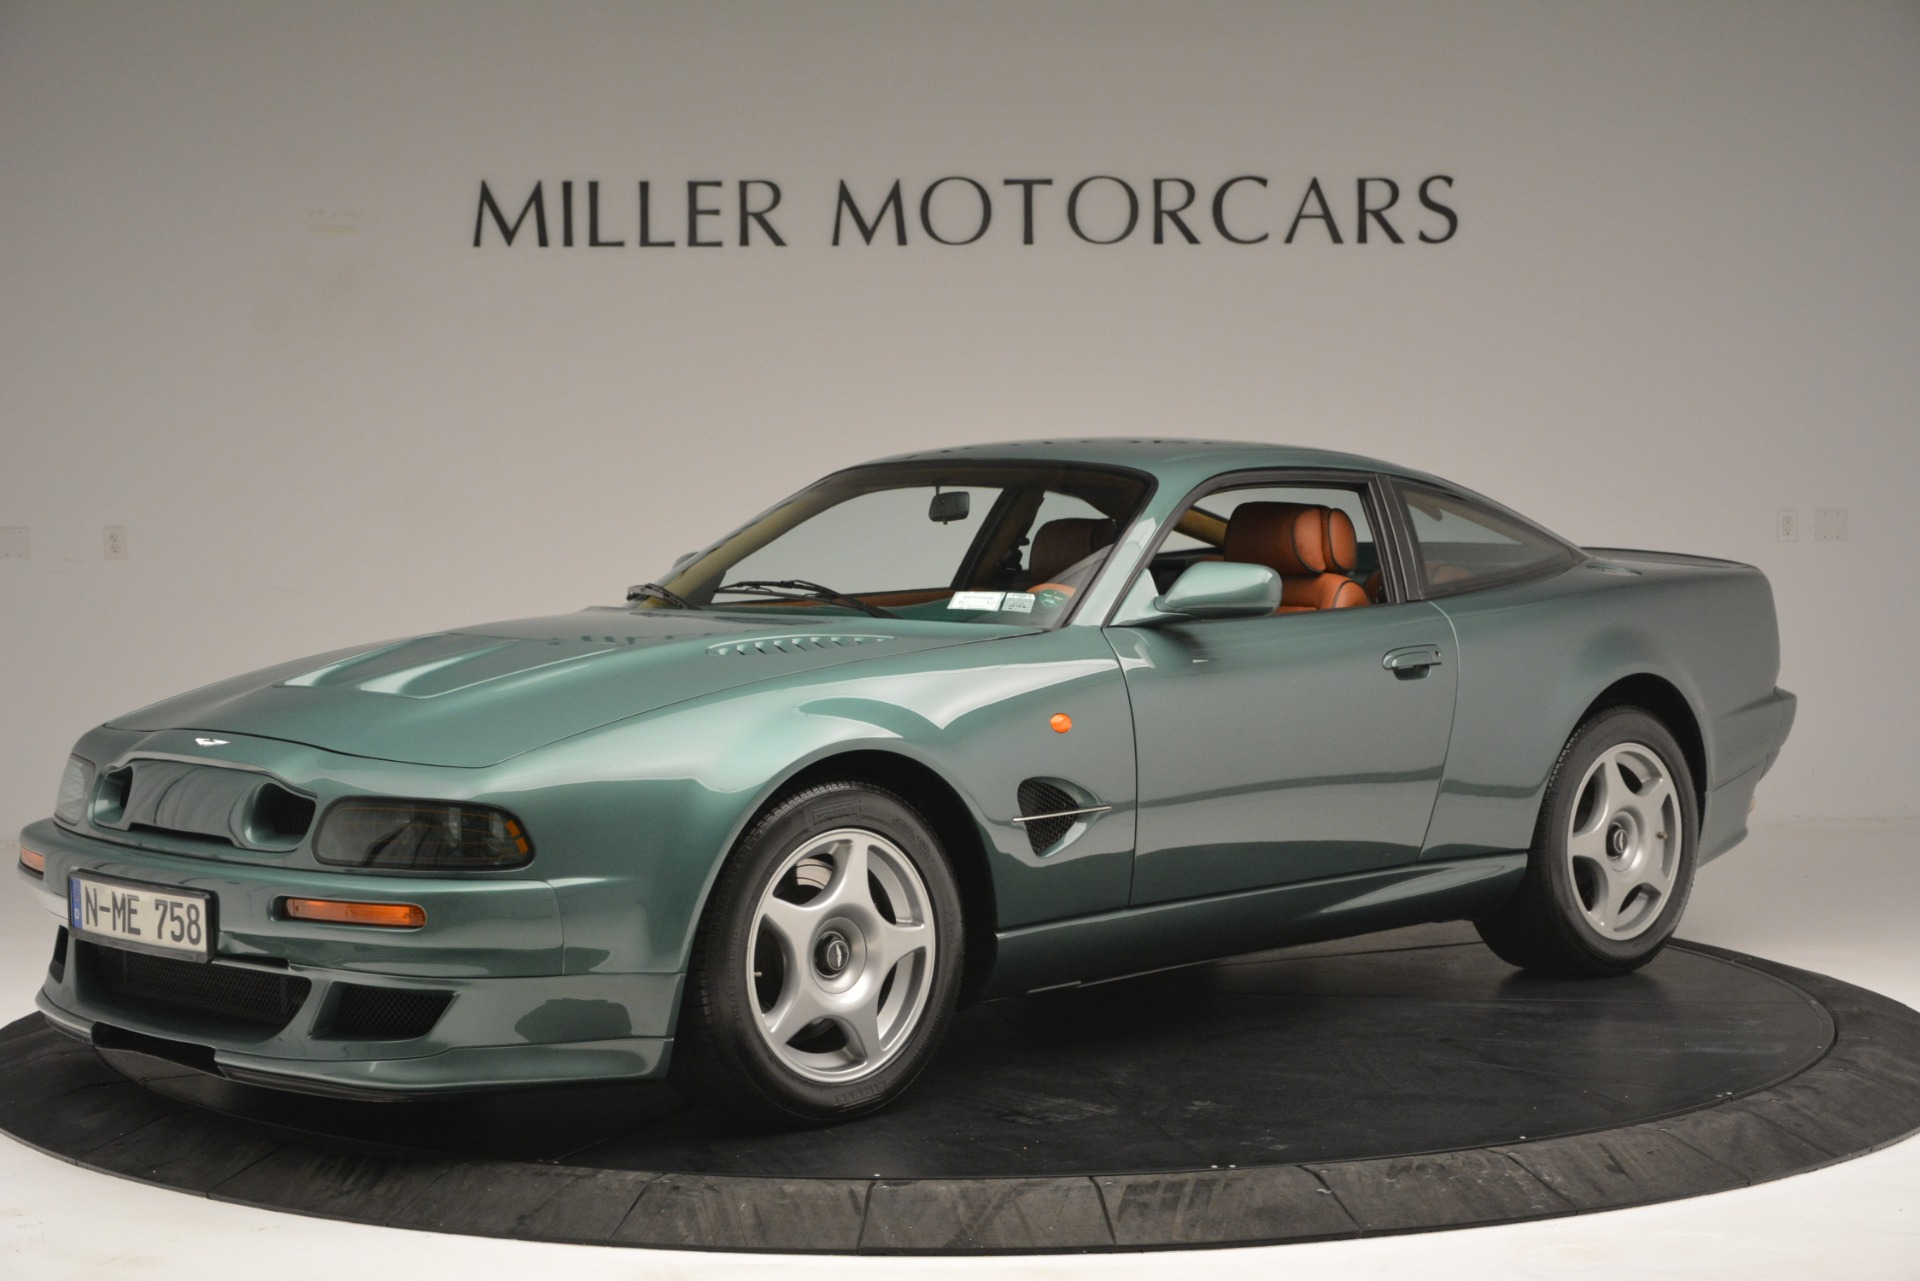 Used 1999 Aston Martin V8 Vantage Le Mans V600 Coupe for sale $499,900 at McLaren Greenwich in Greenwich CT 06830 1